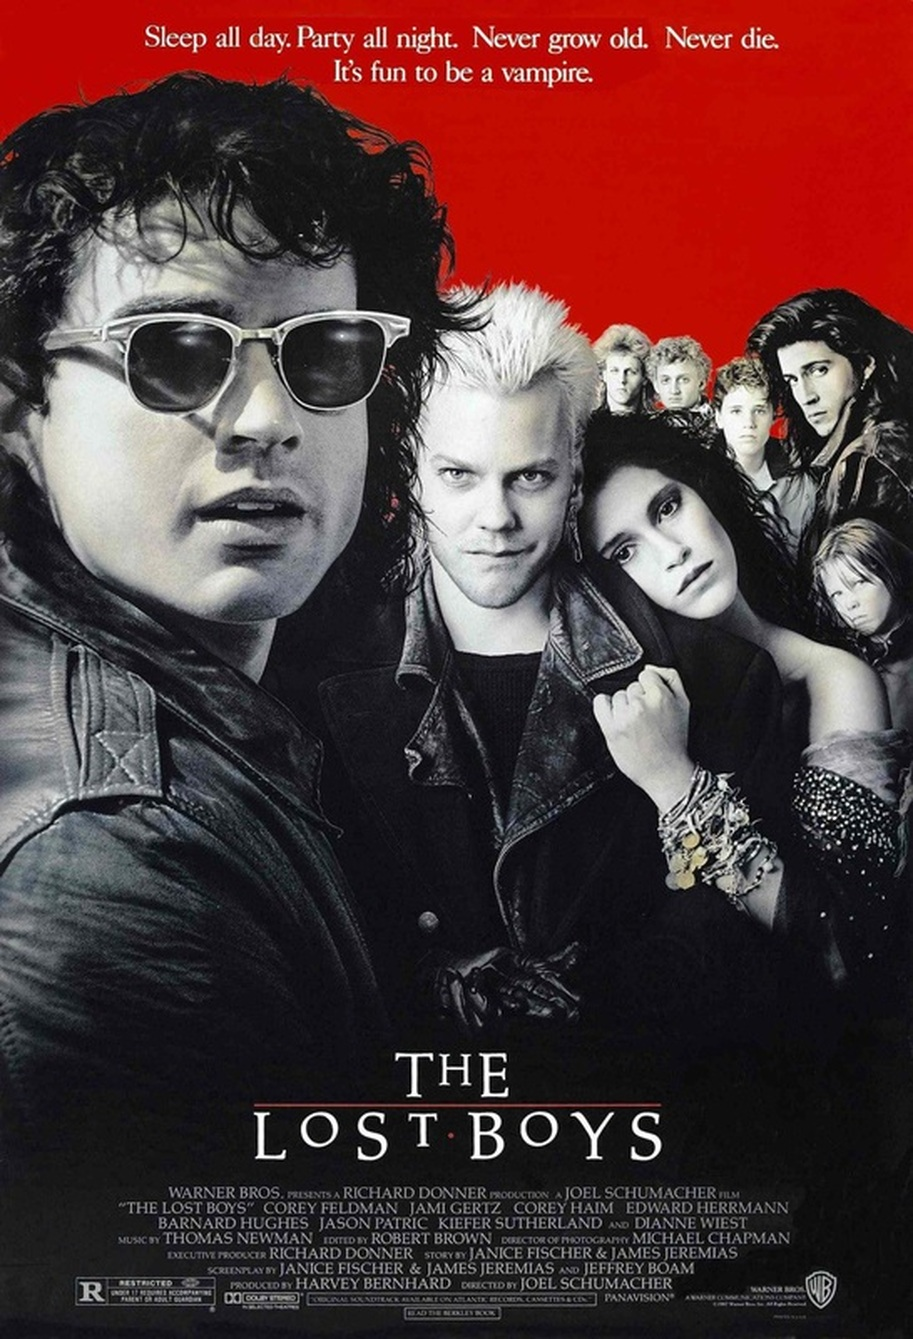 THE LOST BOYS (15) 1986